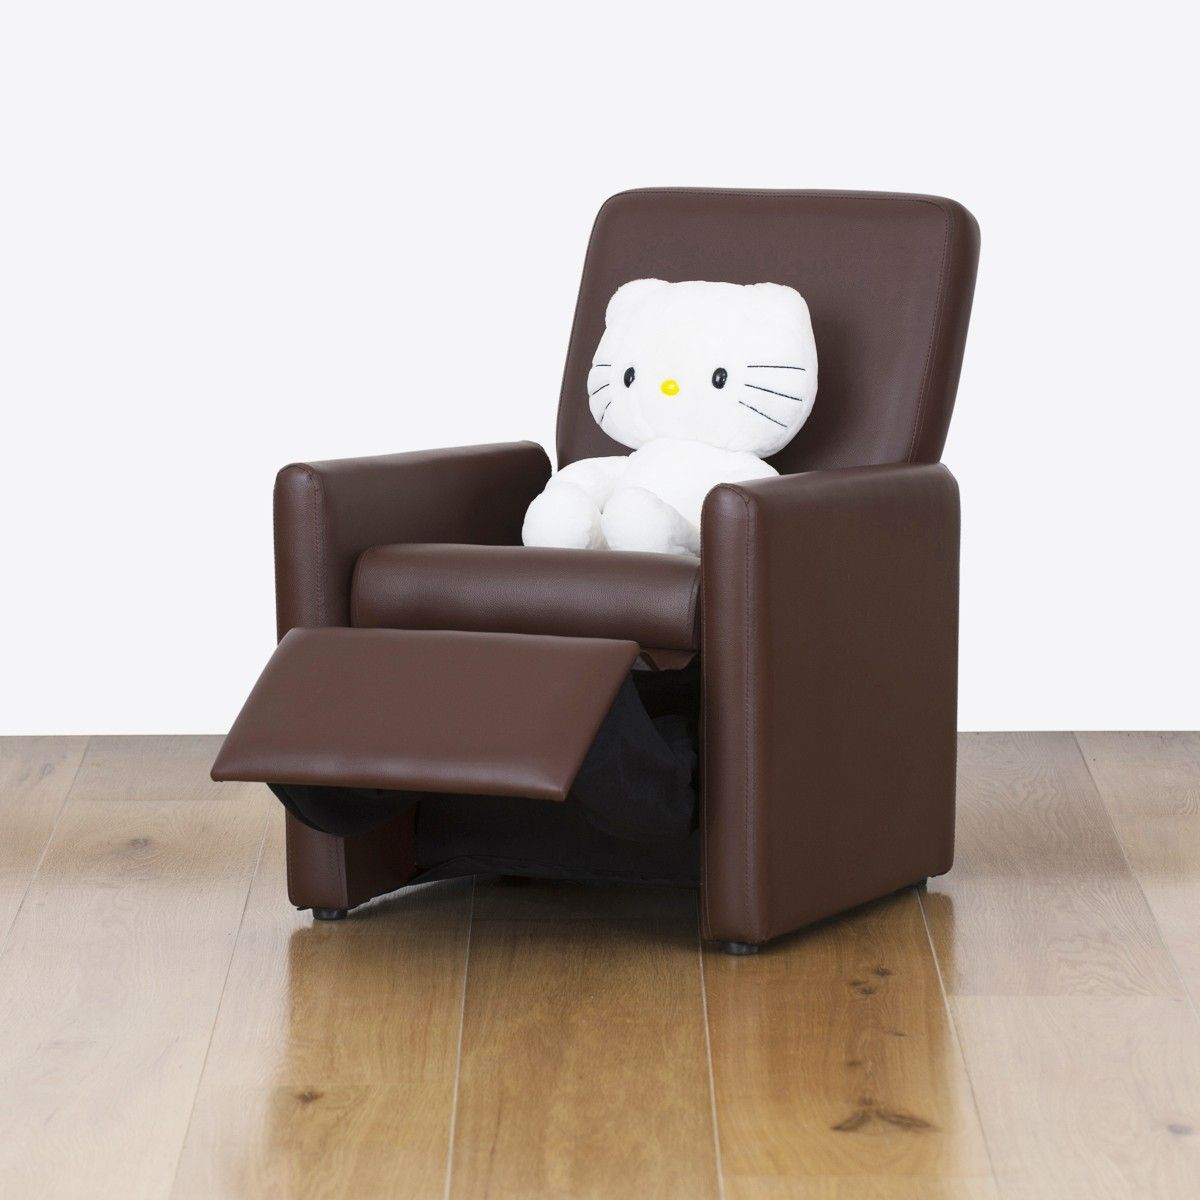 Watoto Kids Recliner Chair   Chocolate Brown | RP: $125.00, SP: $100.00